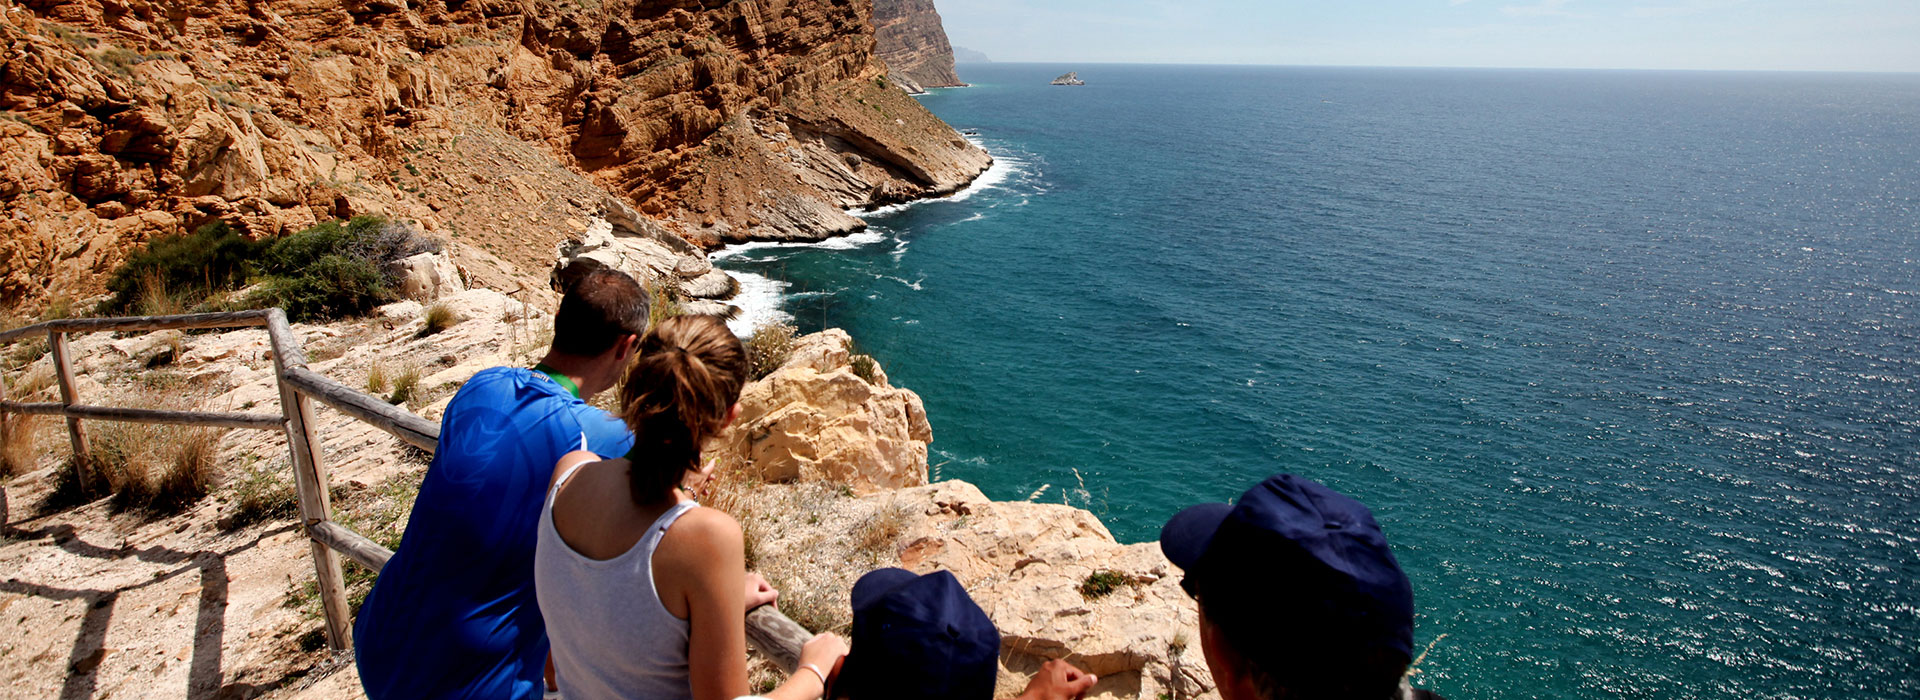 Adventure and sports activities in Spain